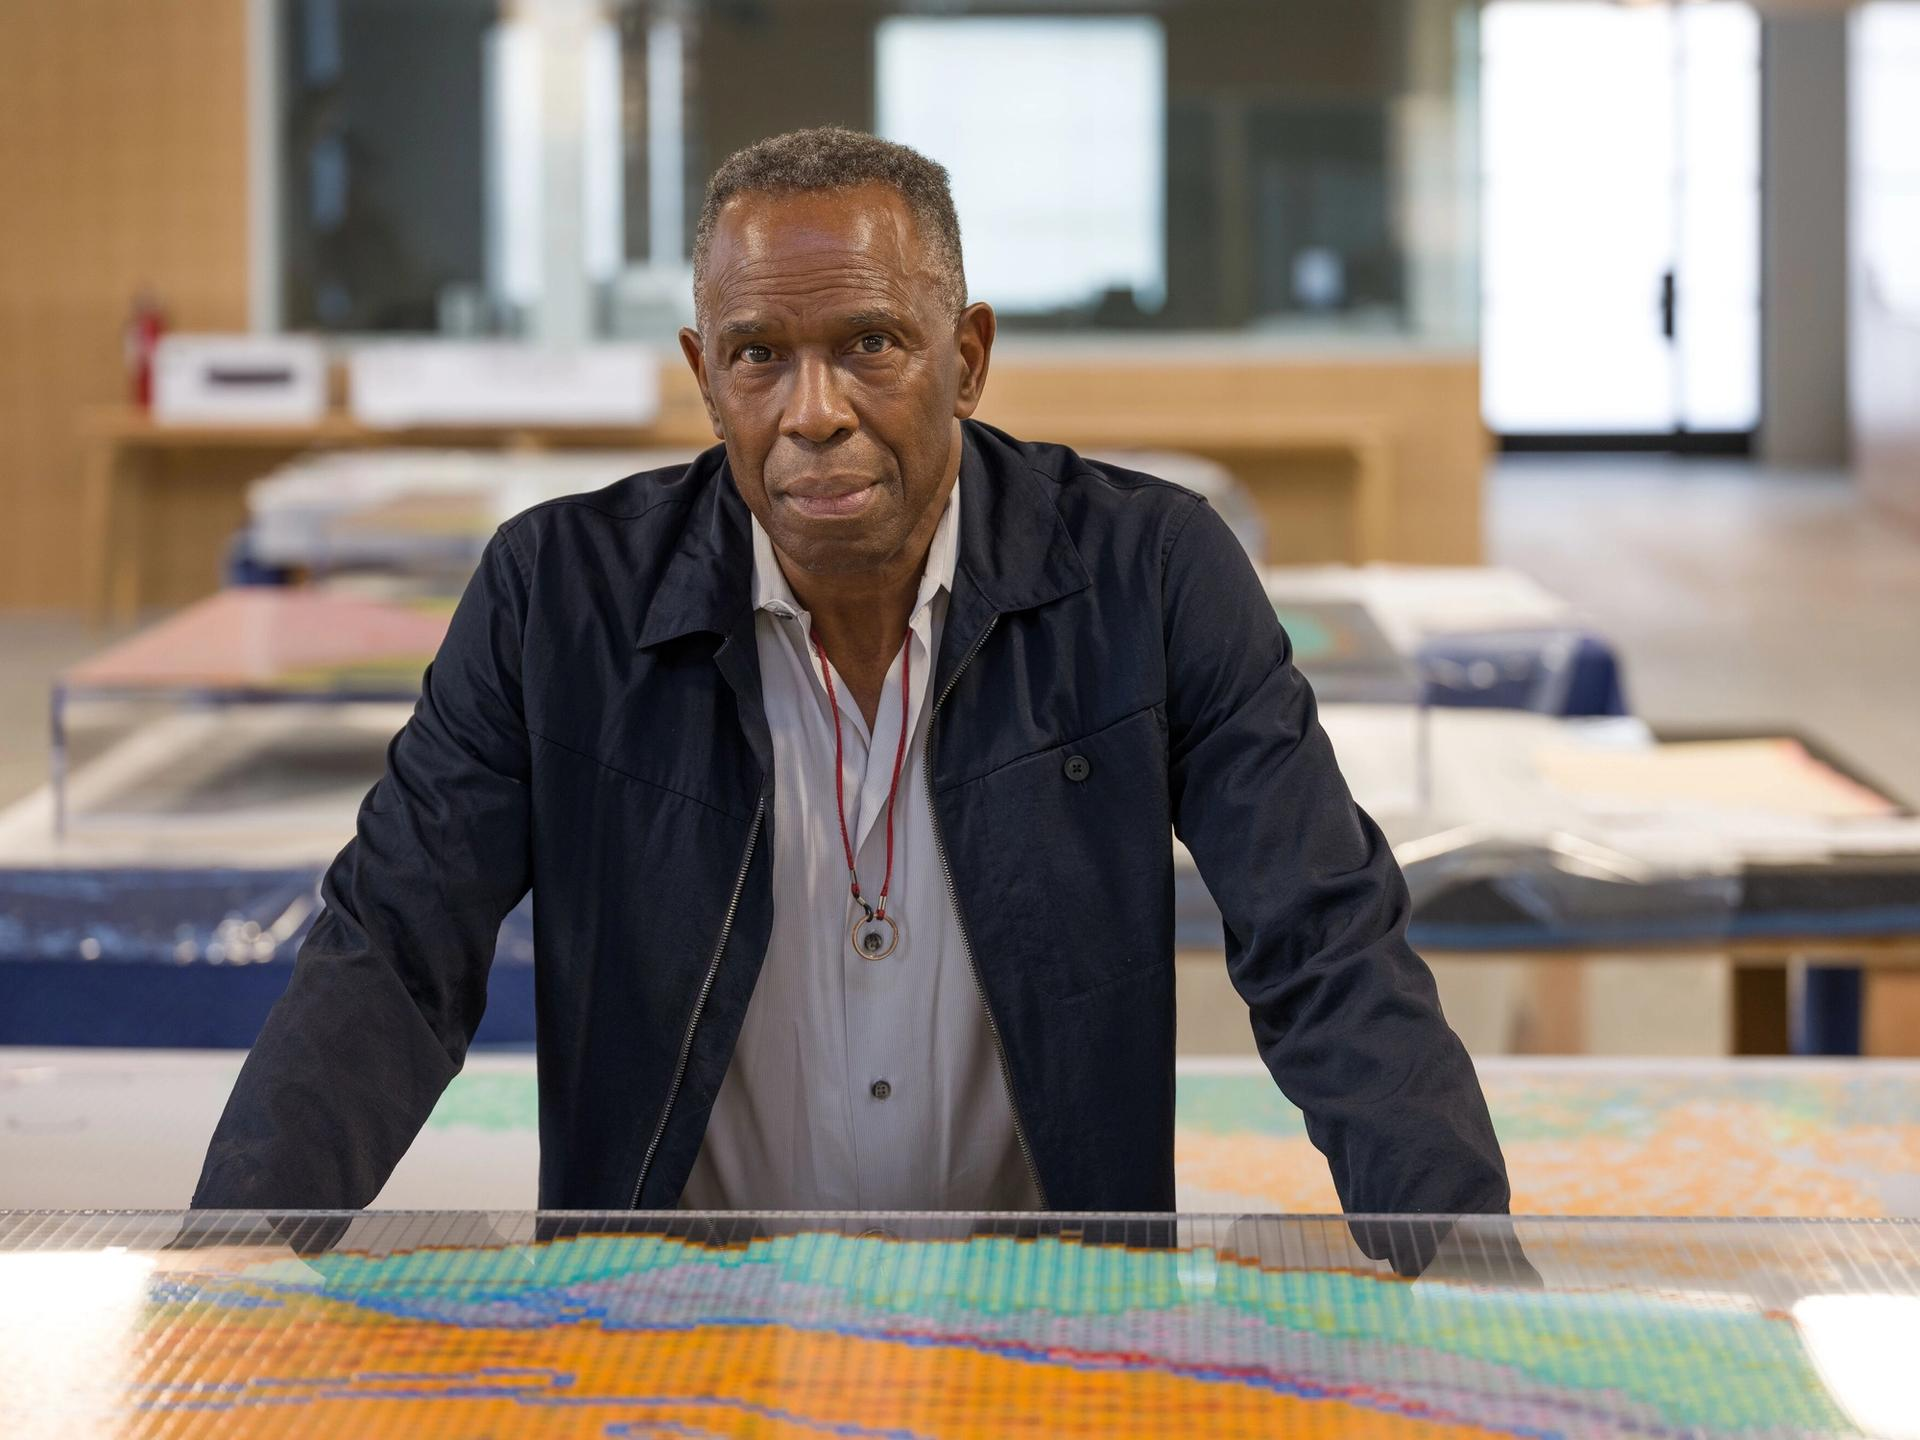 Charles Gaines in his Los Angeles studio, 2020 © Charles Gaines Courtesy the artist and Hauser & Wirth Photo: Fredrik Nilsen